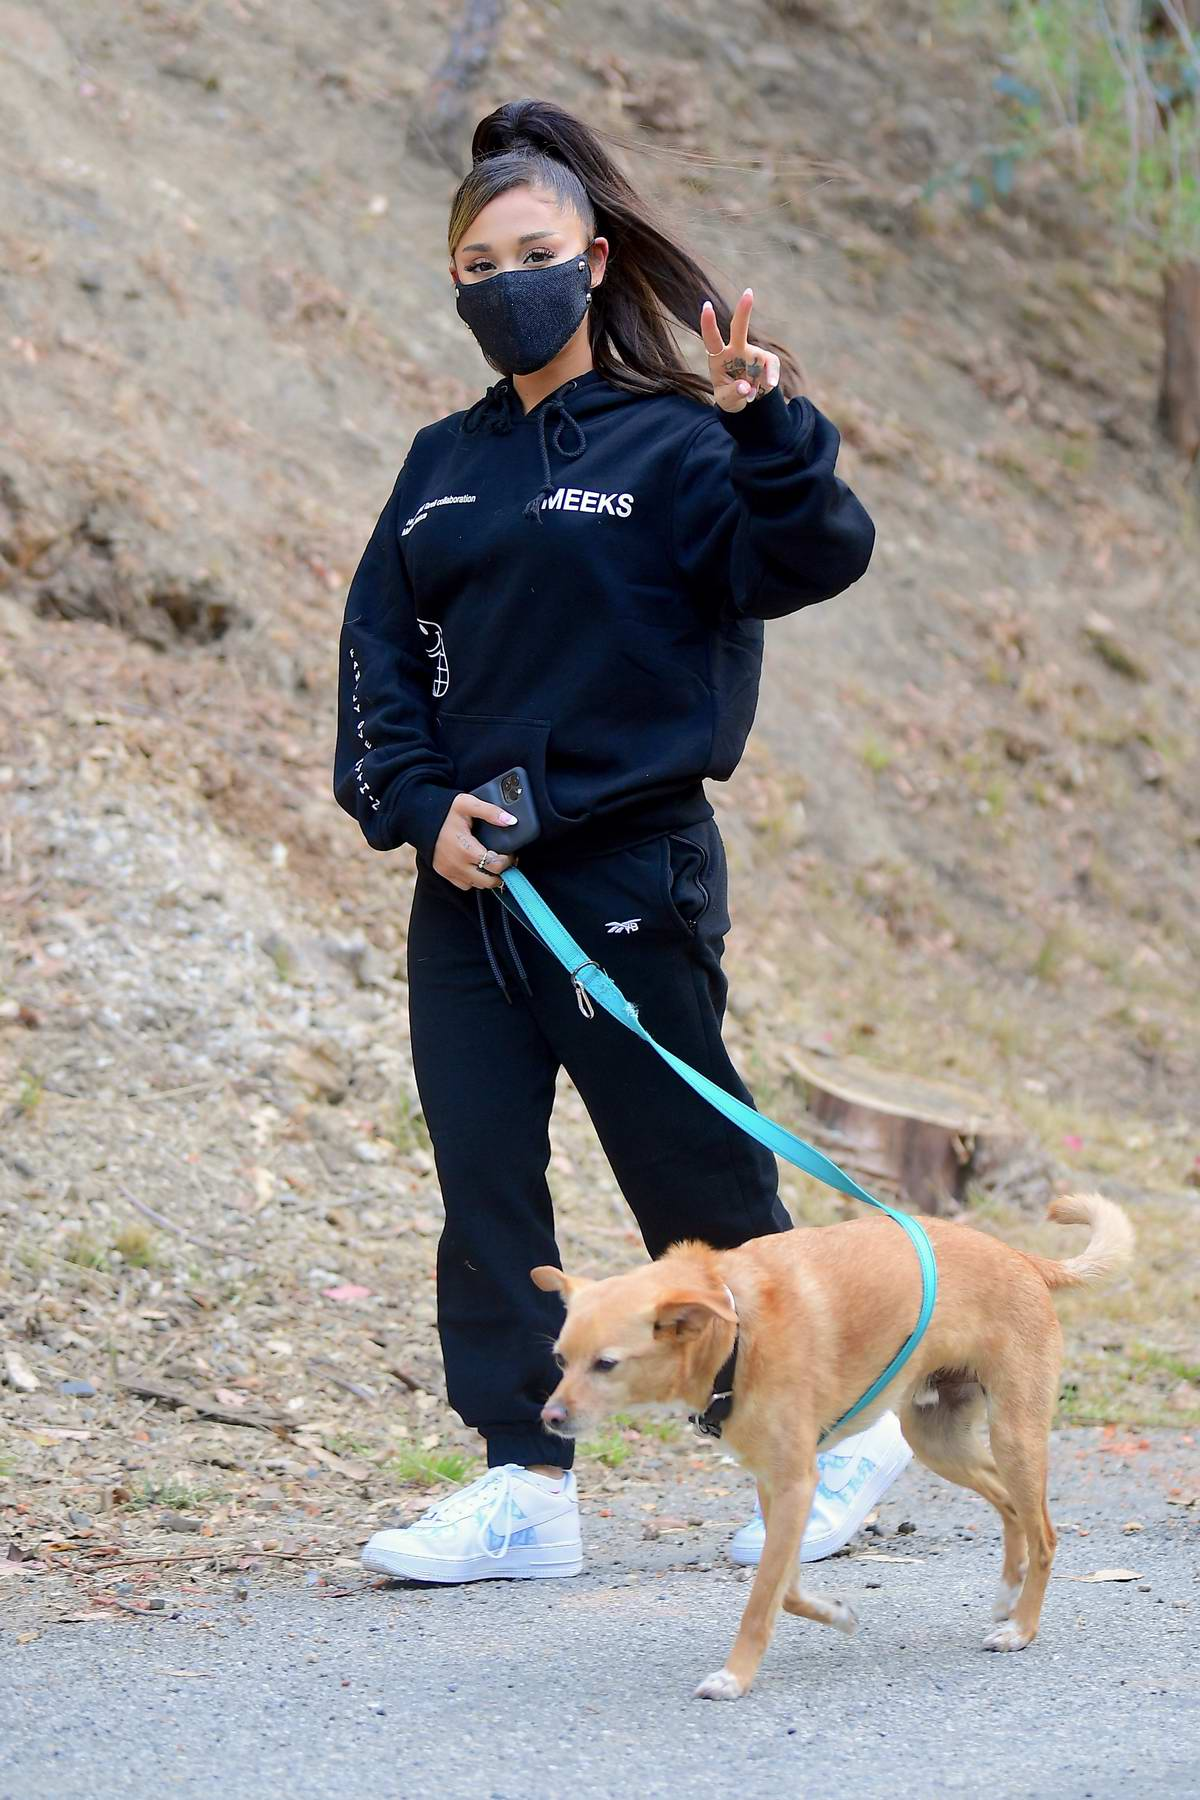 Ariana Grande keeps it comfy in black sweatsuit while out for a hike in Los Angeles